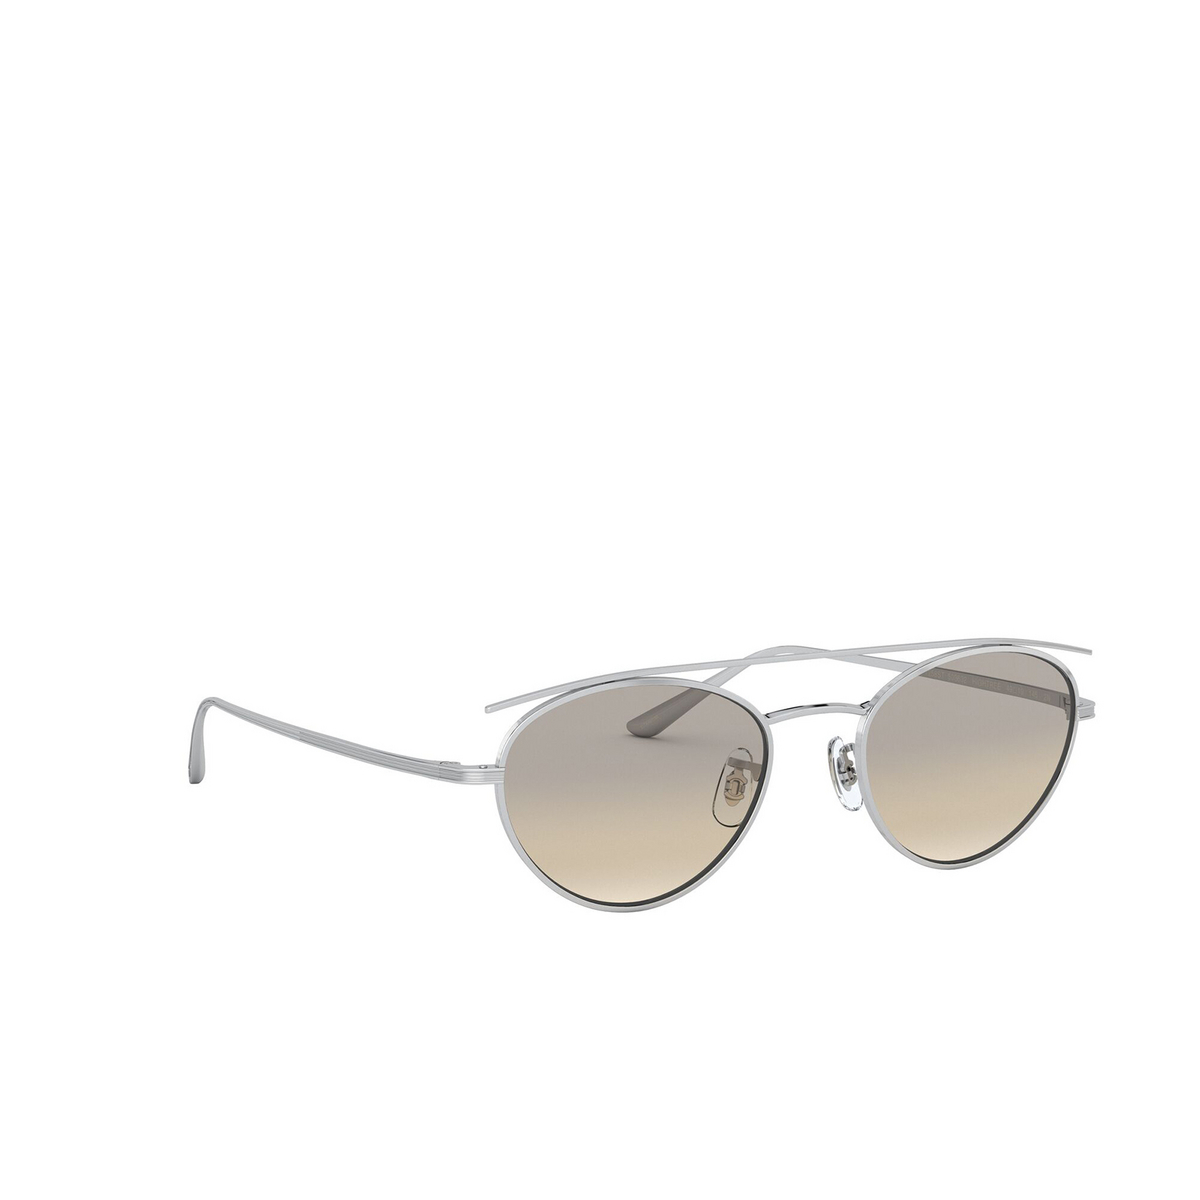 Oliver Peoples® Oval Sunglasses: Hightree OV1258ST color Silver 503632 - three-quarters view.